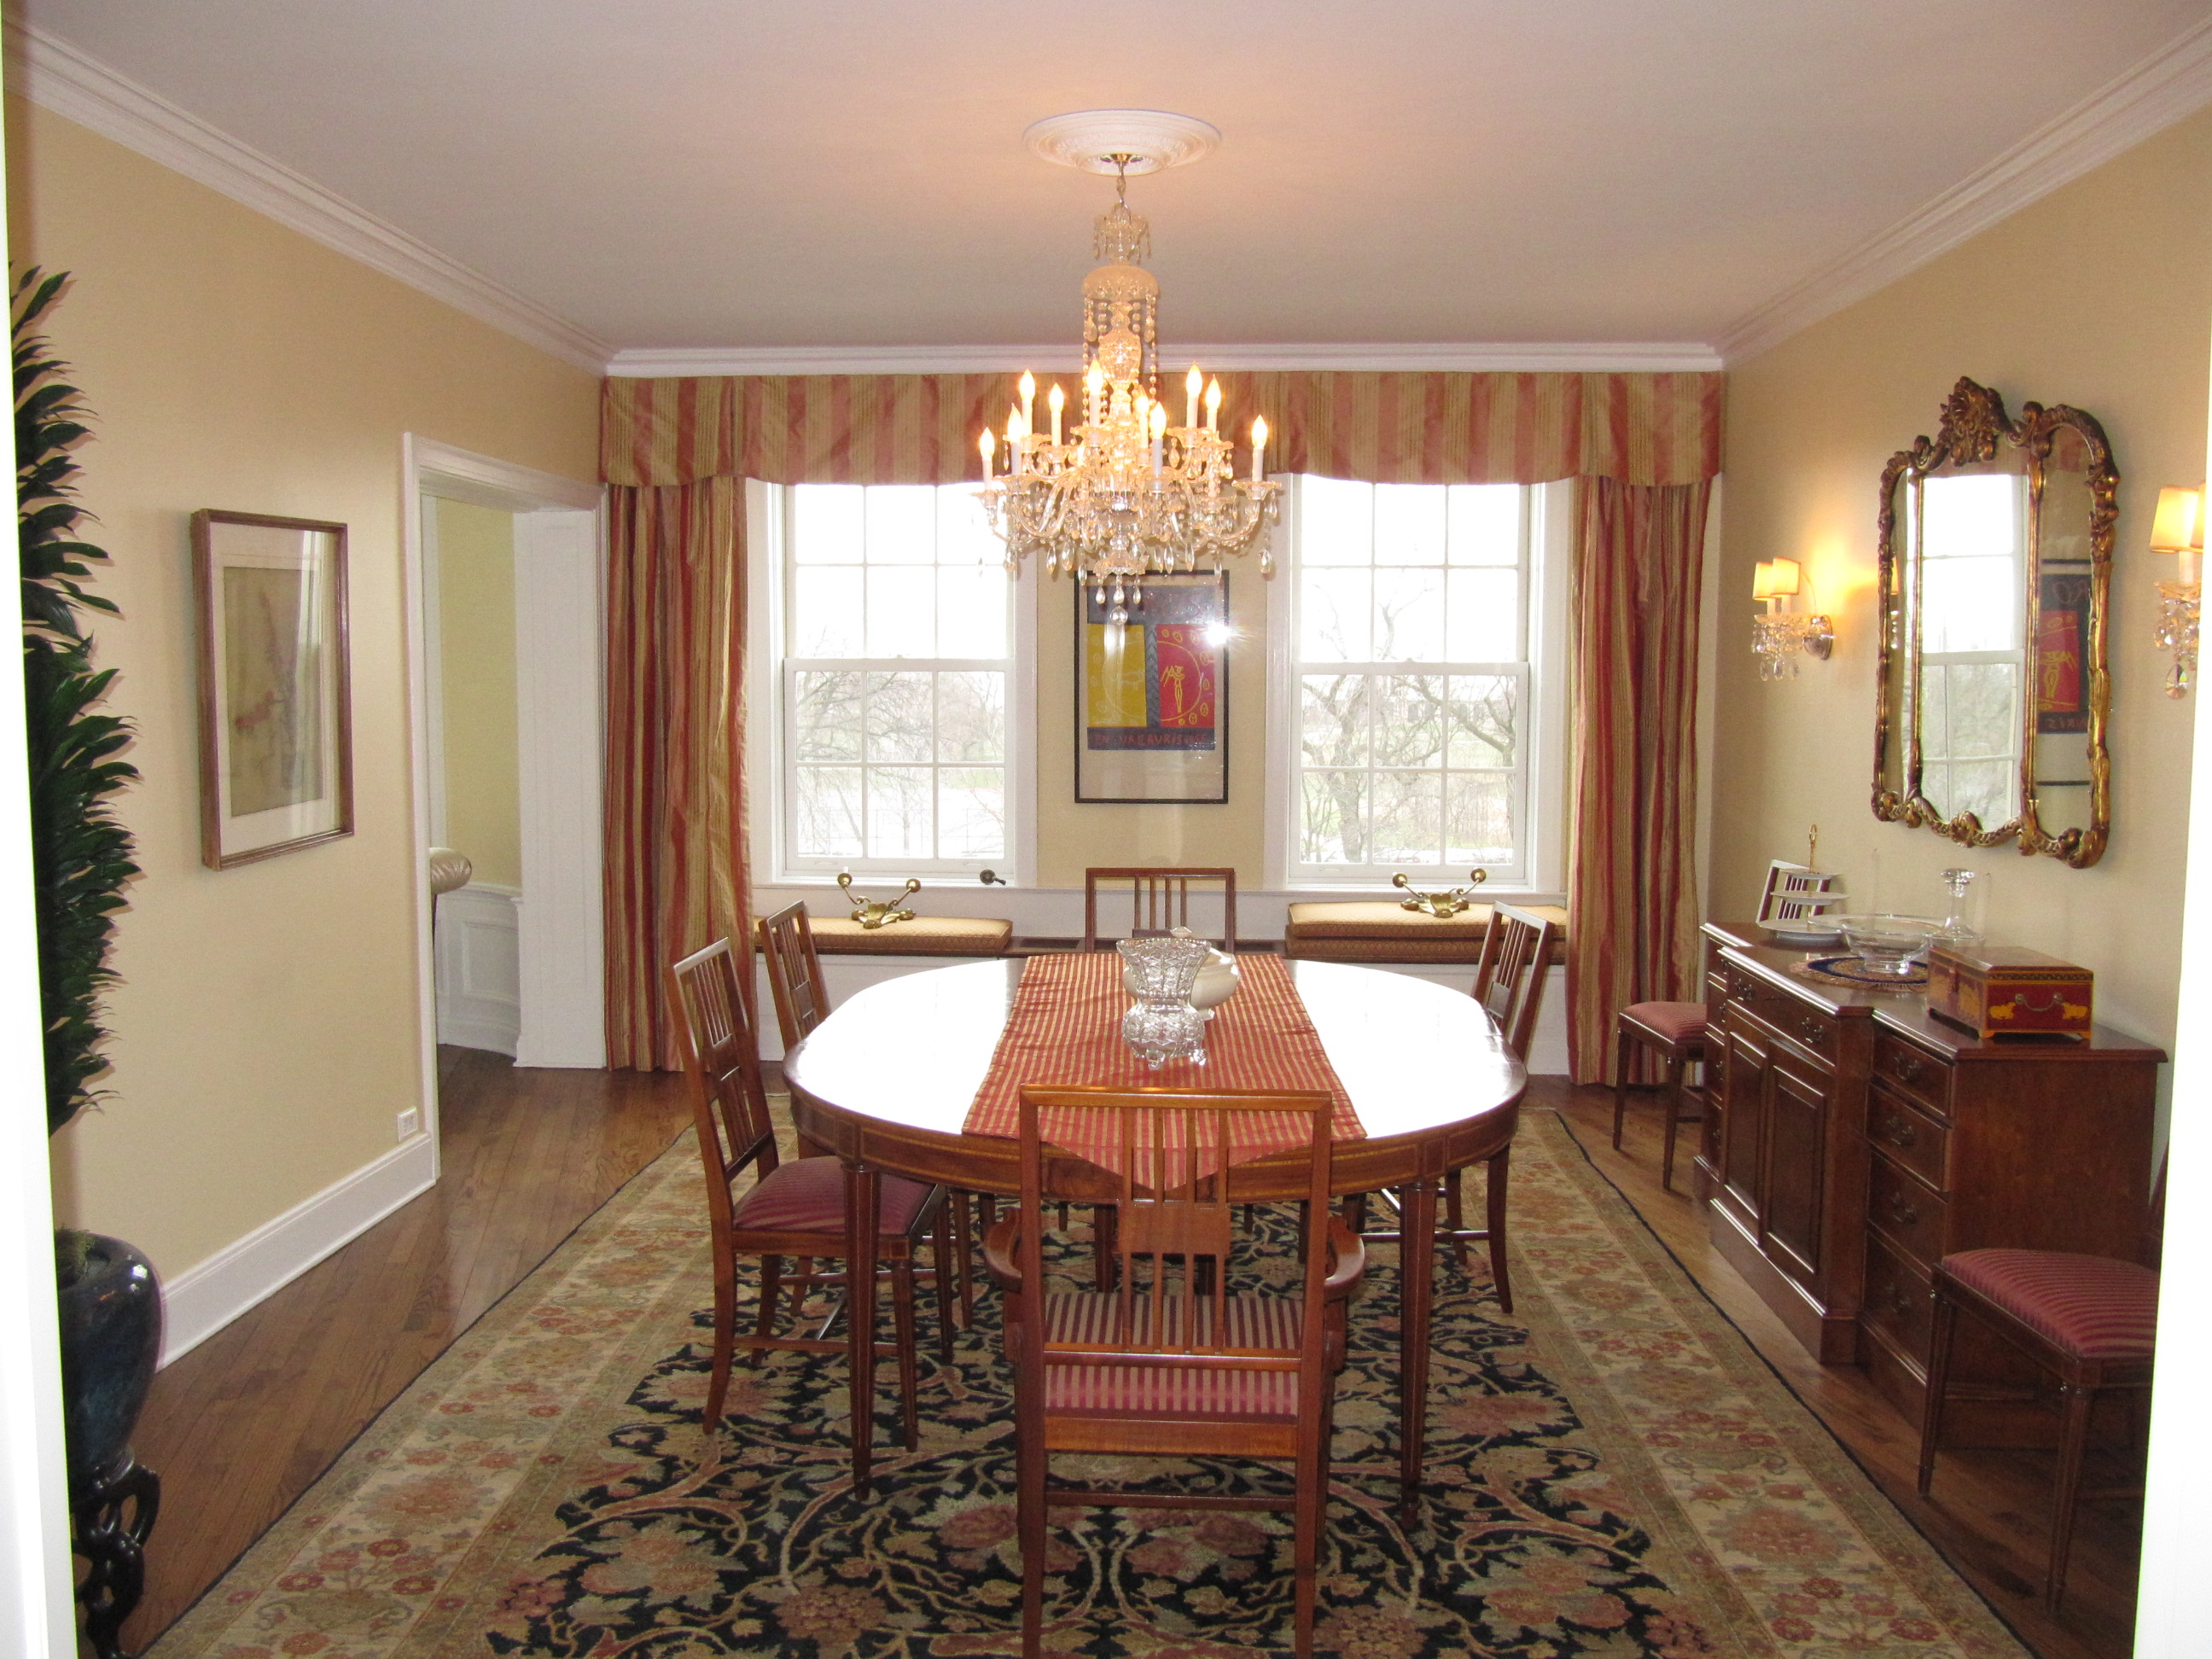 Silk Striped Draperies With A Pleated Valance Above And Window Seat Cushions Make This An Inviting Dining Room Amenities Home Design